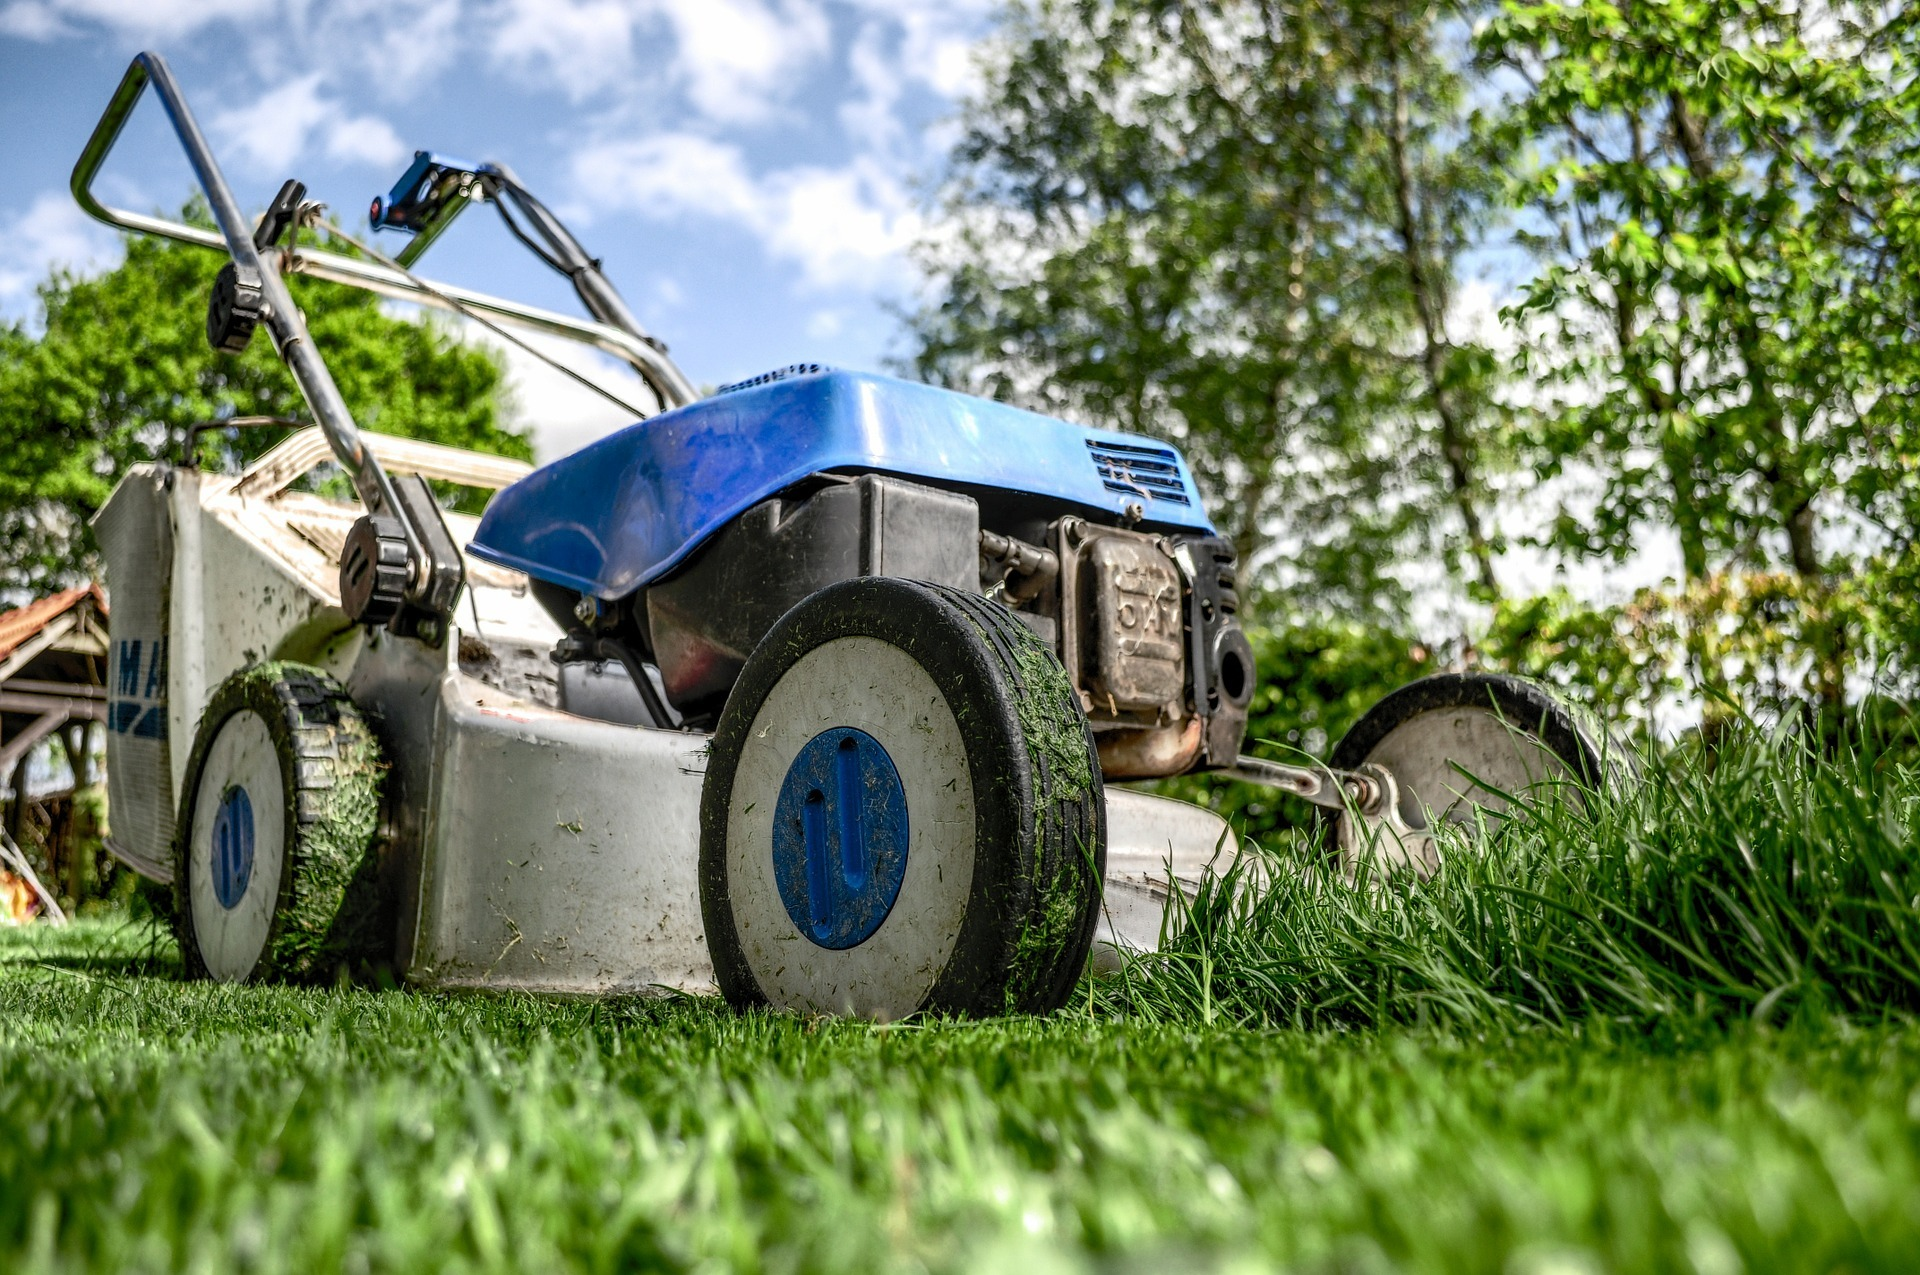 Lawn Mower Repair Company